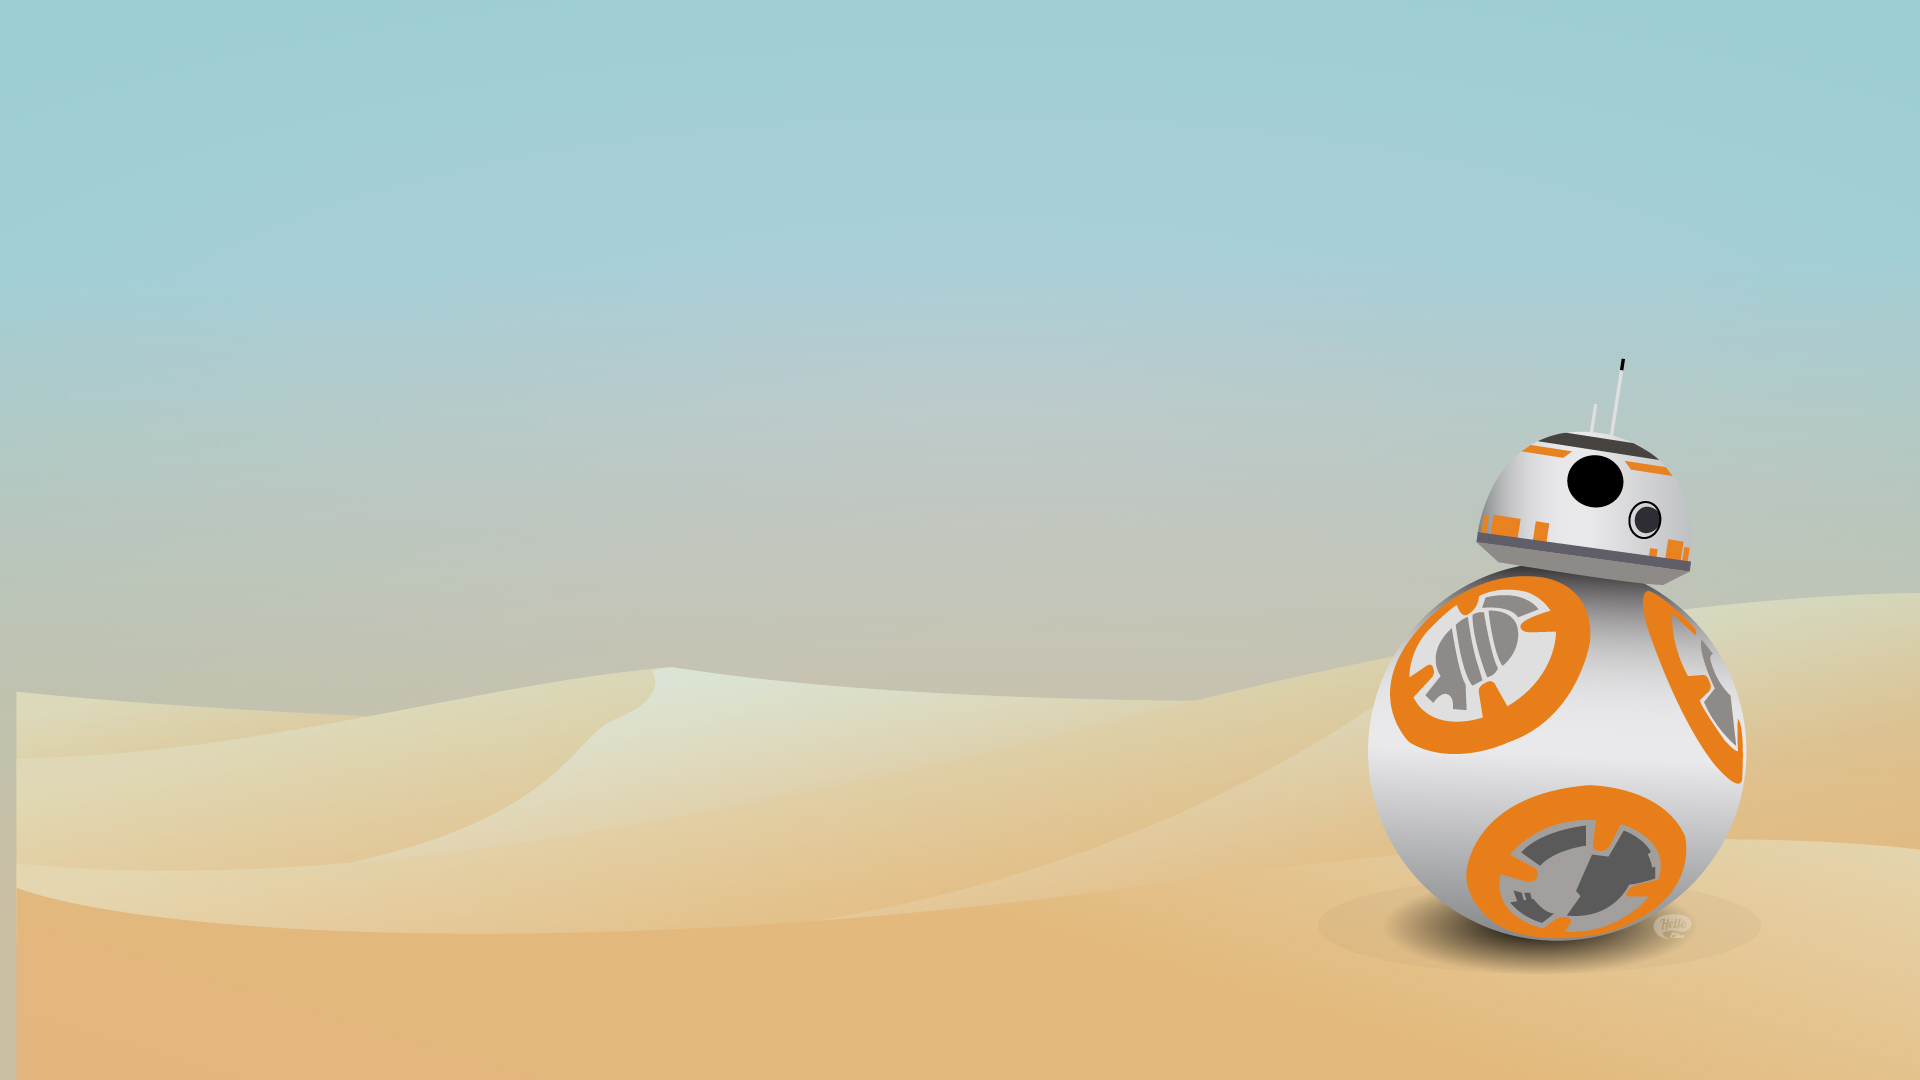 bb8 wallpaper hd - photo #20